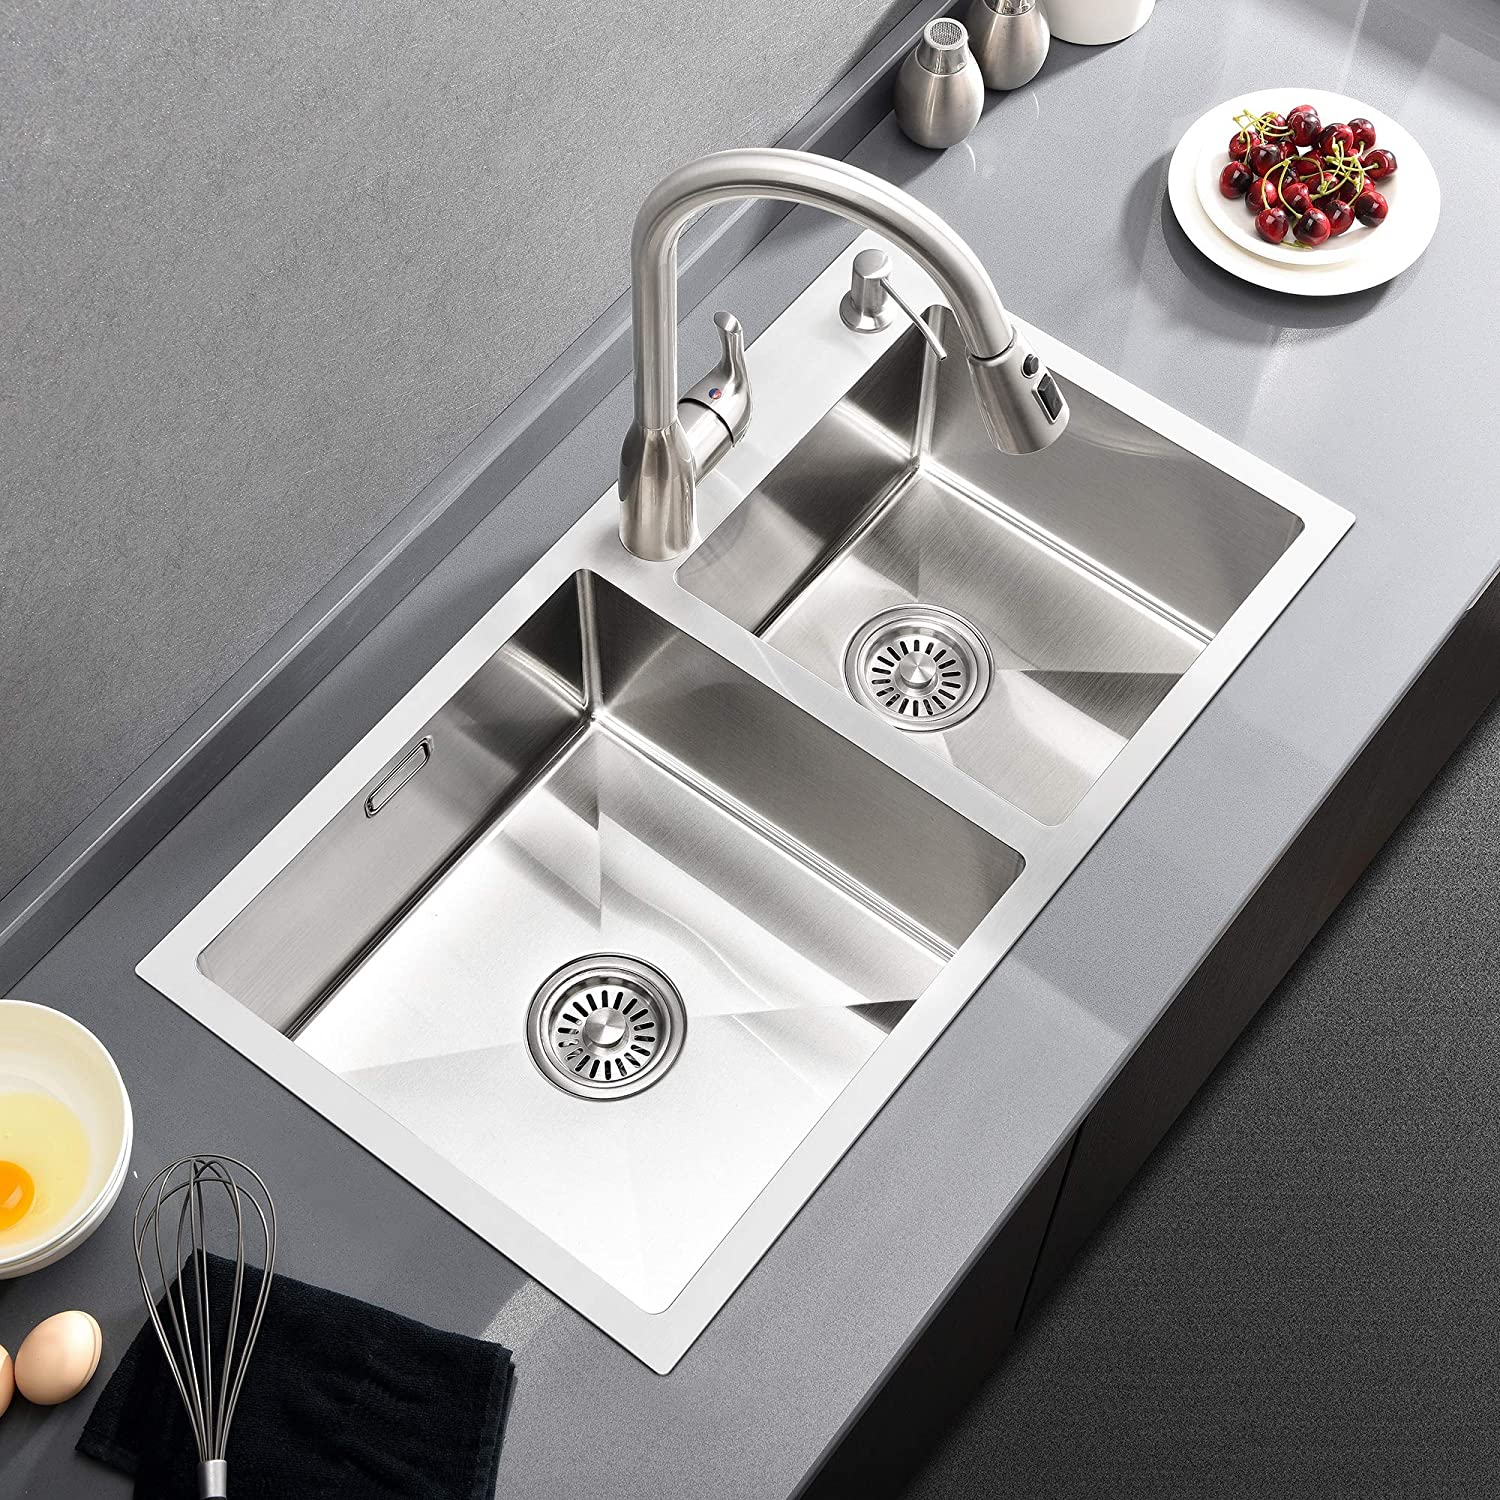 Comelln Best Commercial 30Inch Double Bowl Kitchen Sink, 304 ...